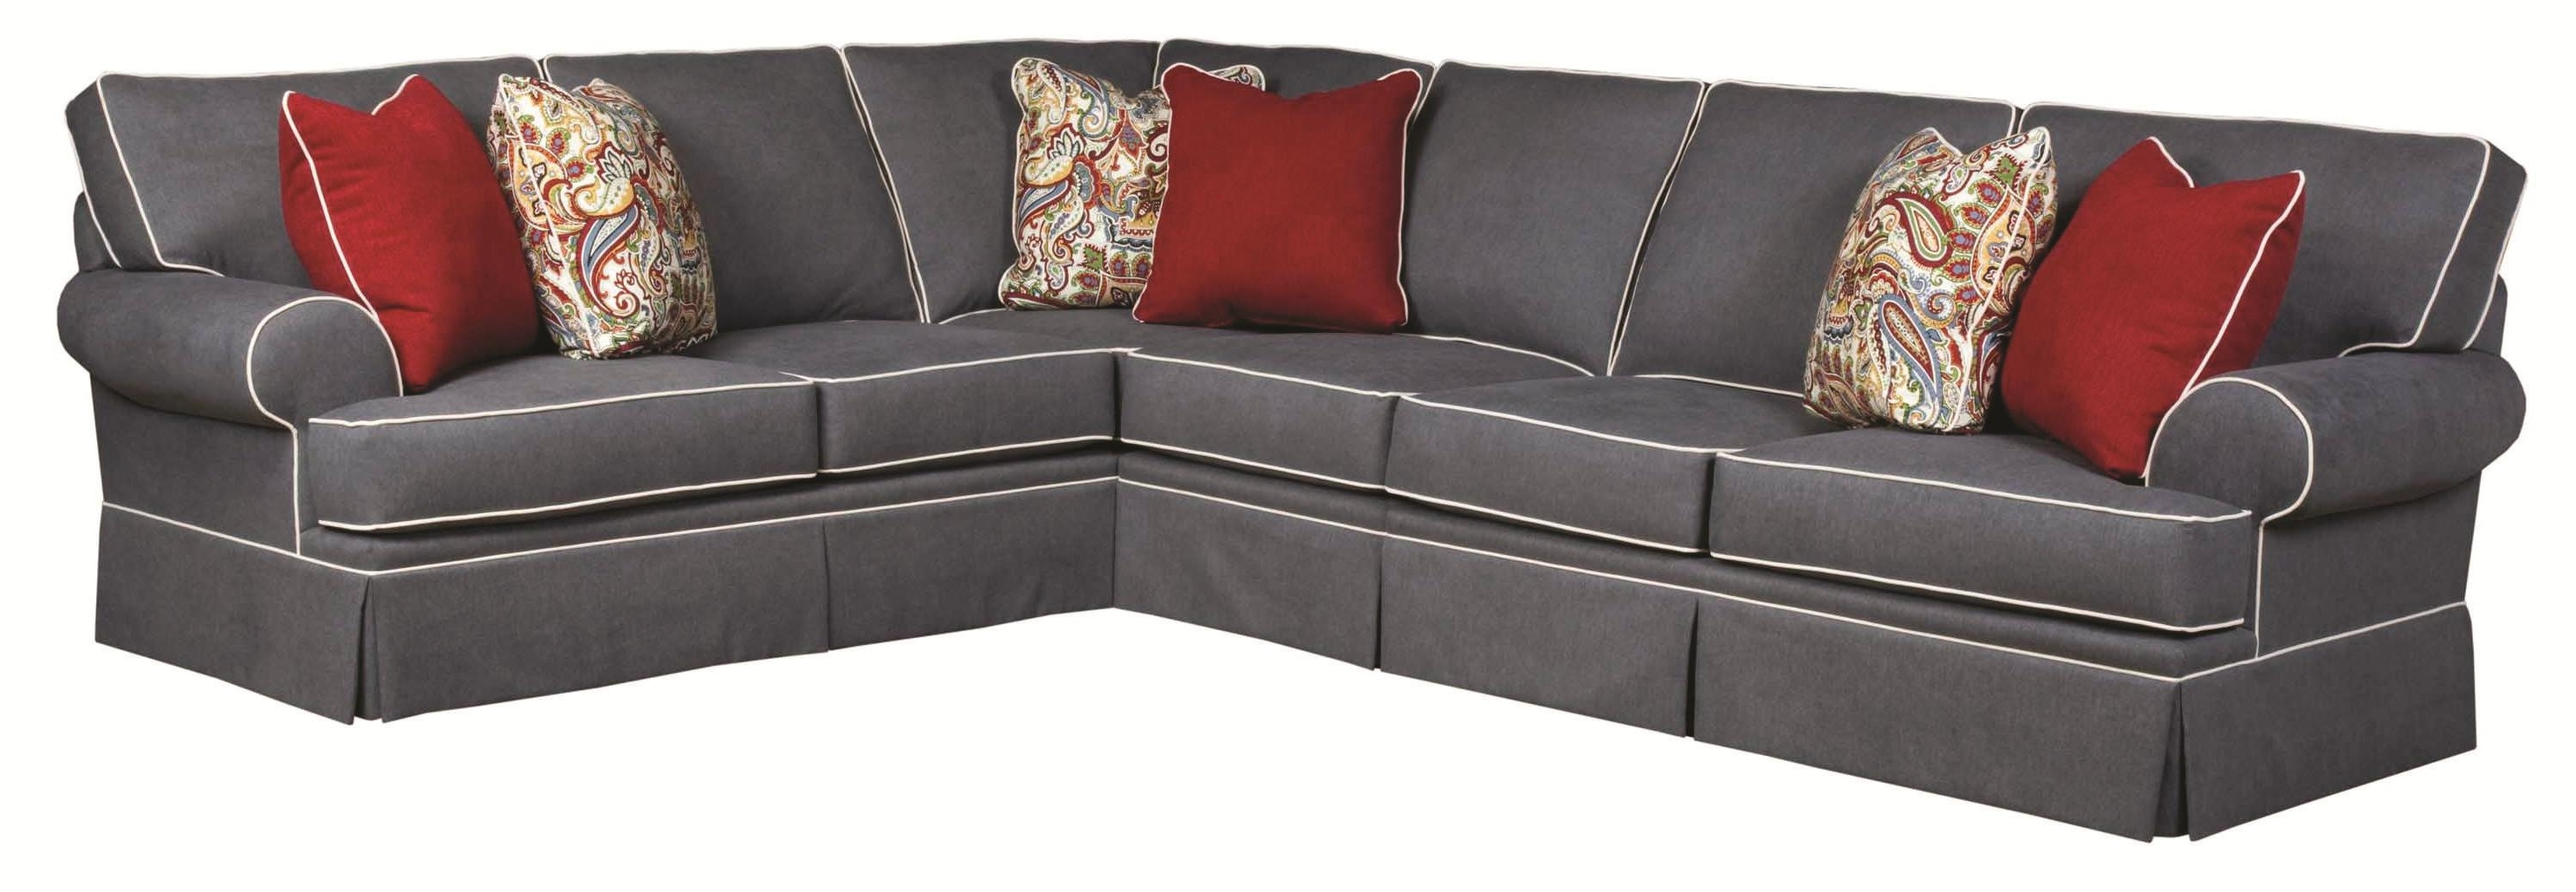 Broyhill Furniture Emily Traditional 3 Piece Sectional Sofa With Inside 2018 Harrisburg Pa Sectional Sofas (View 2 of 15)